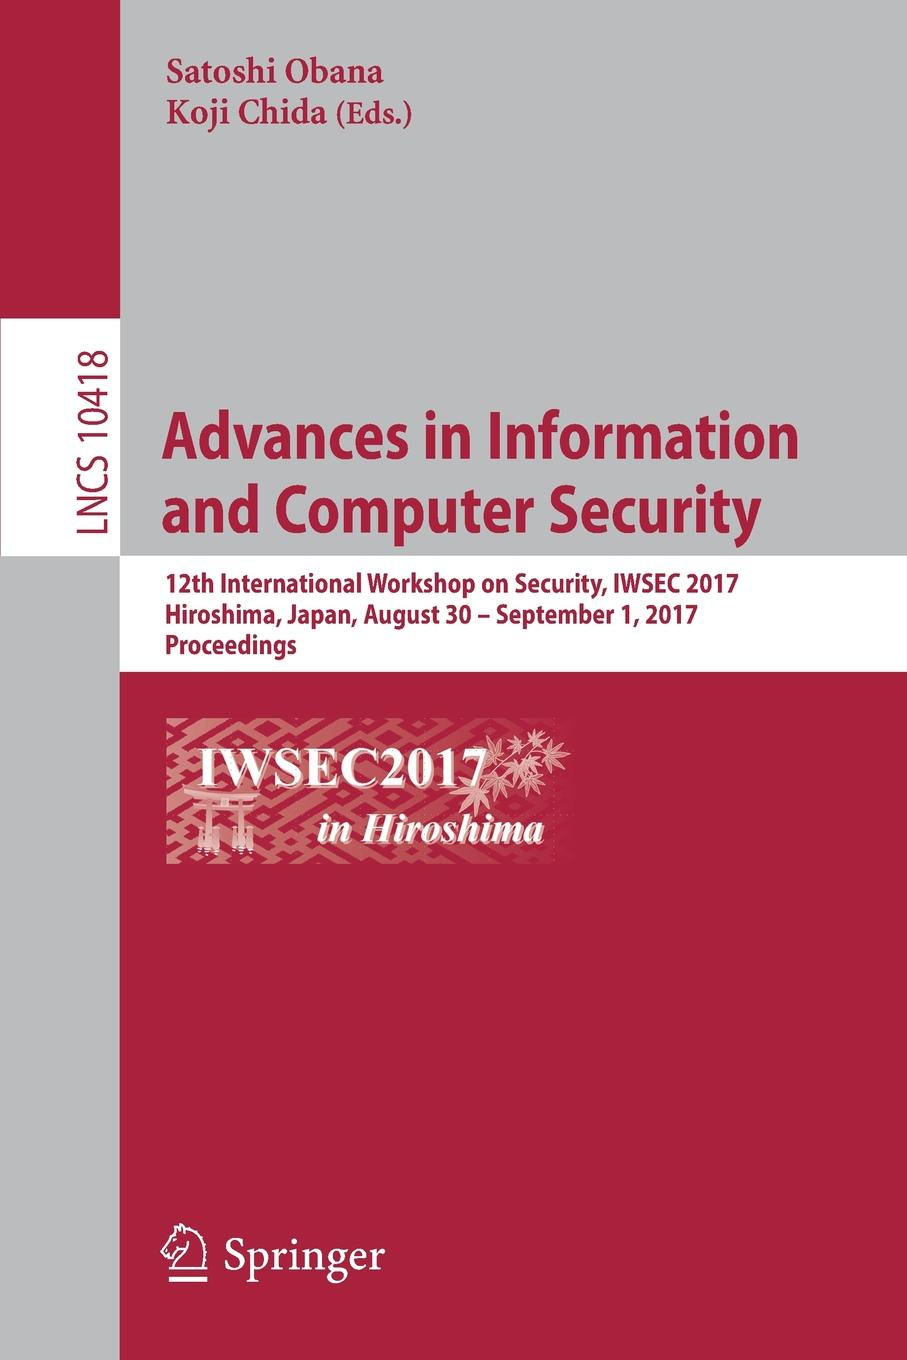 Advances in Information and Computer Security. 12th International Workshop on Security, IWSEC 2017, Hiroshima, Japan, August 30 - September 1, 2017, Proceedings nicole detraz international security and gender